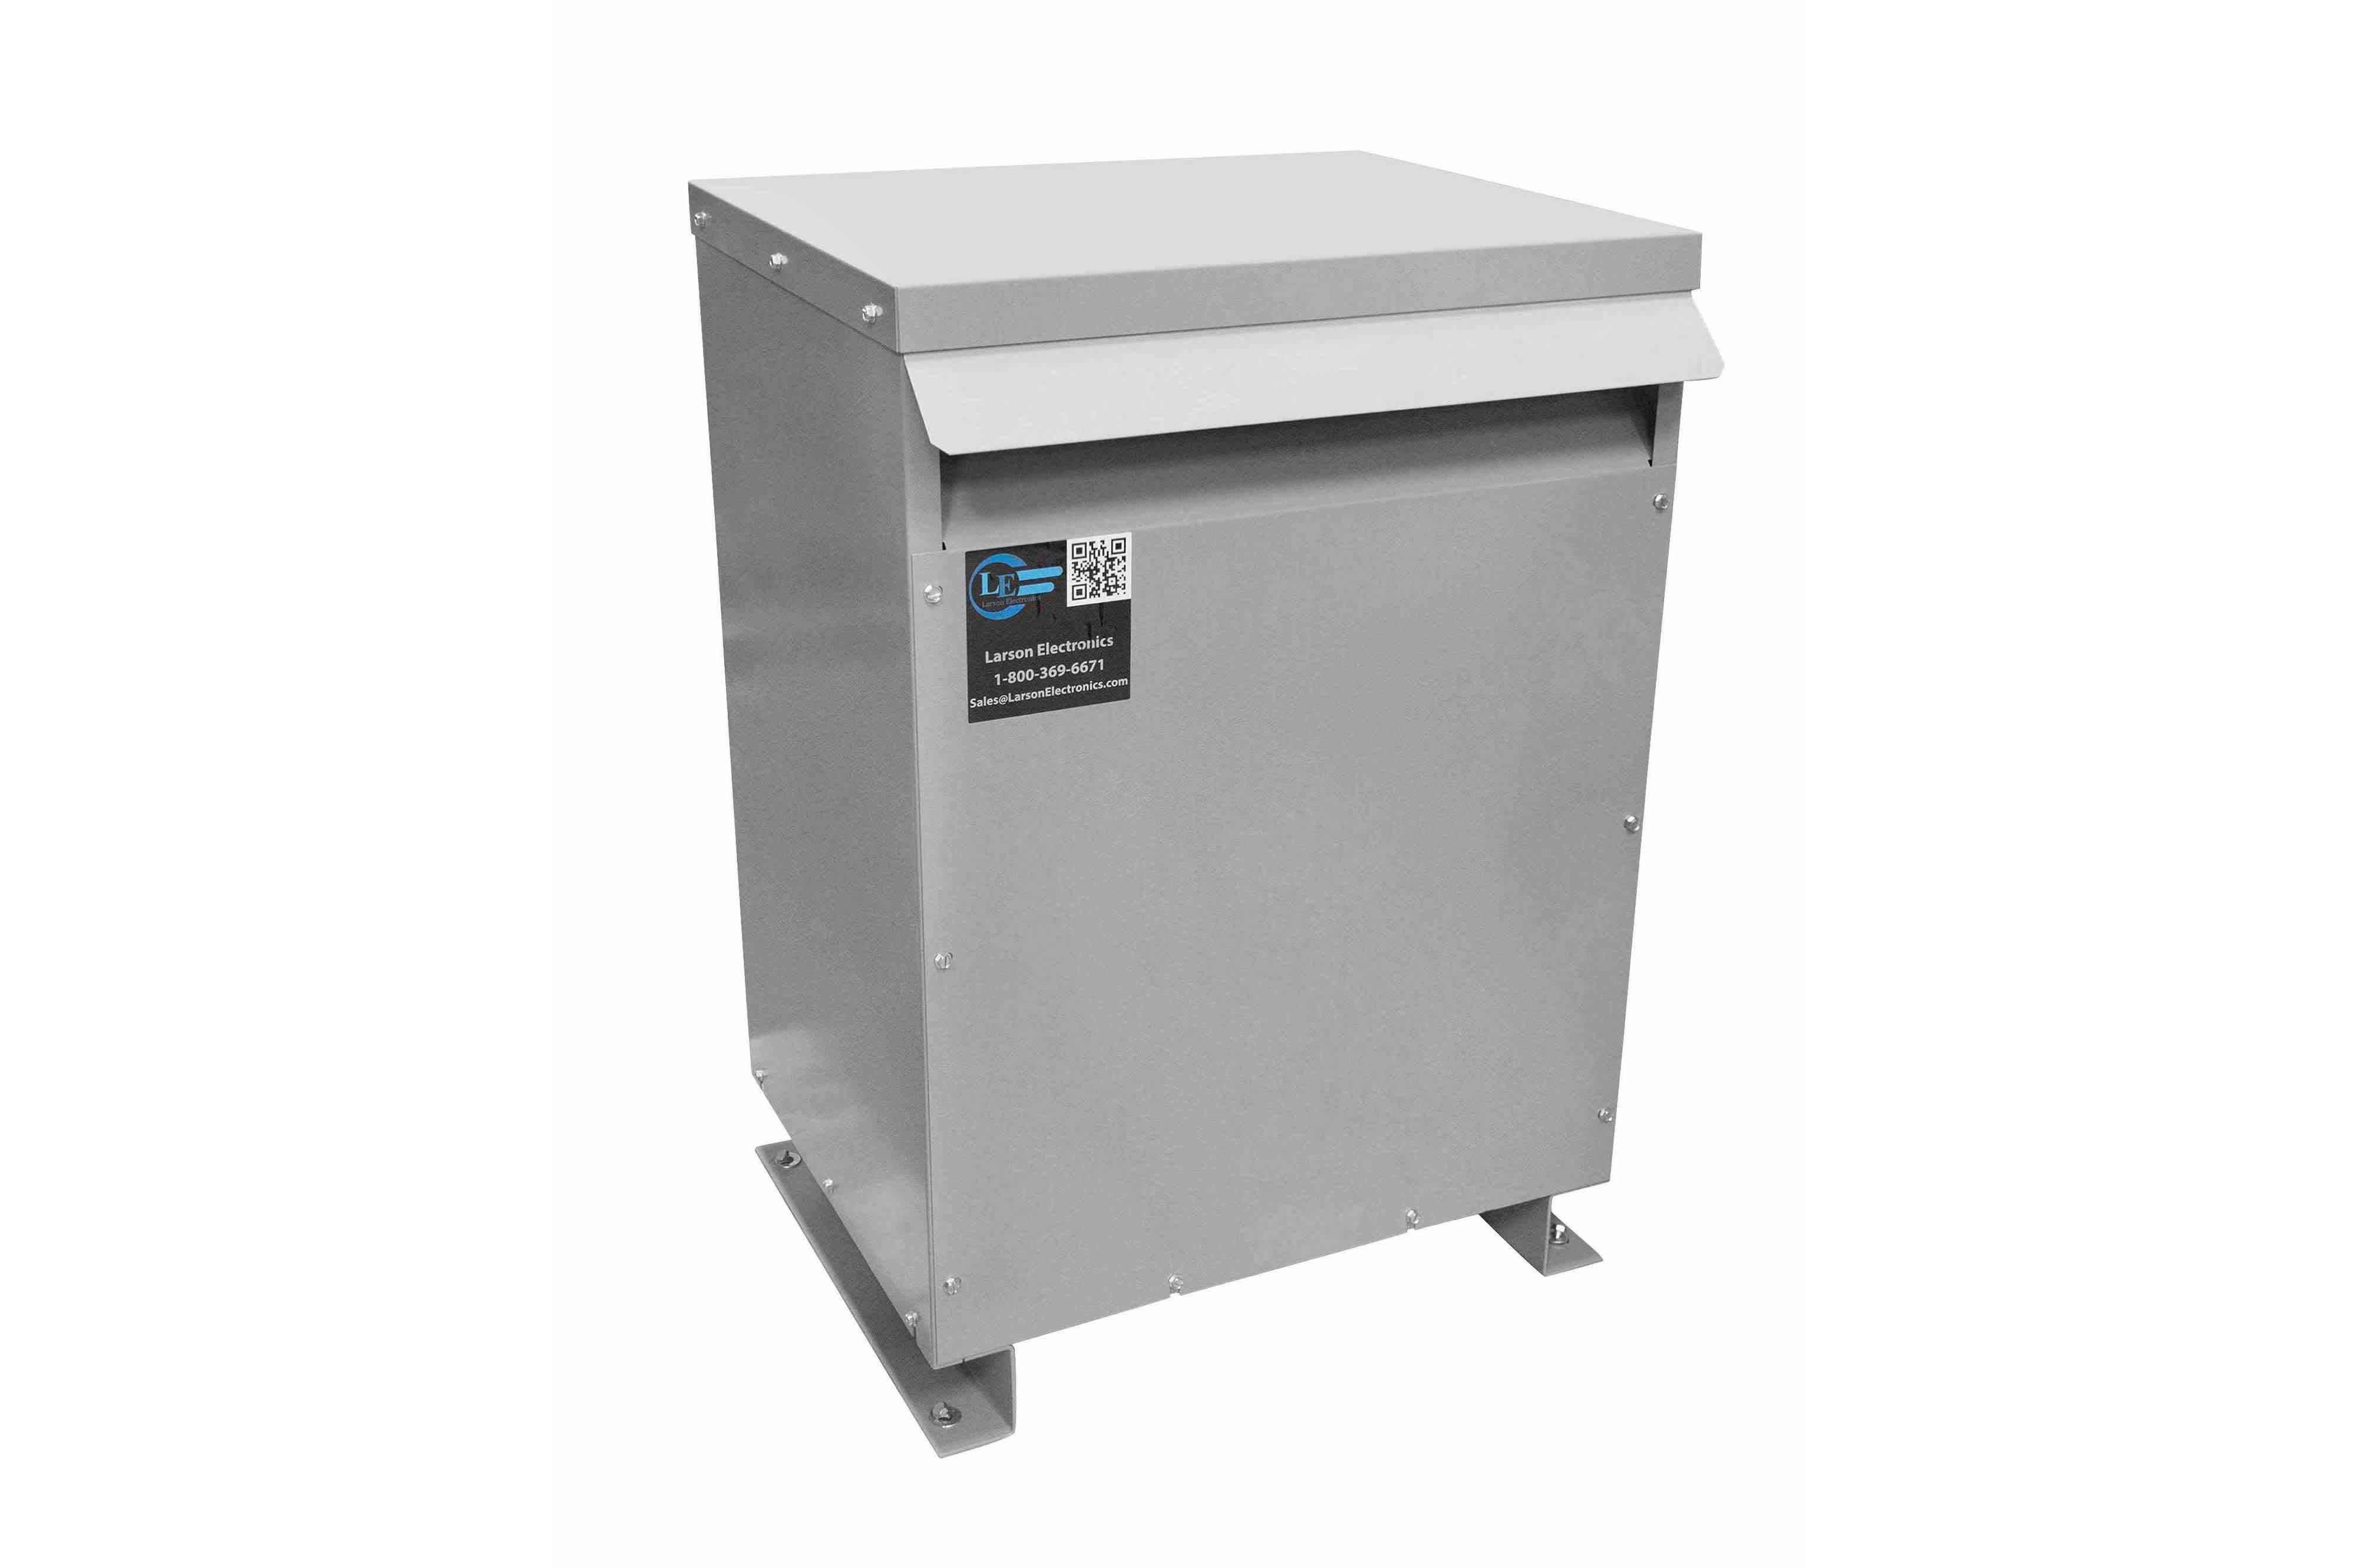 300 kVA 3PH DOE Transformer, 440V Delta Primary, 208Y/120 Wye-N Secondary, N3R, Ventilated, 60 Hz